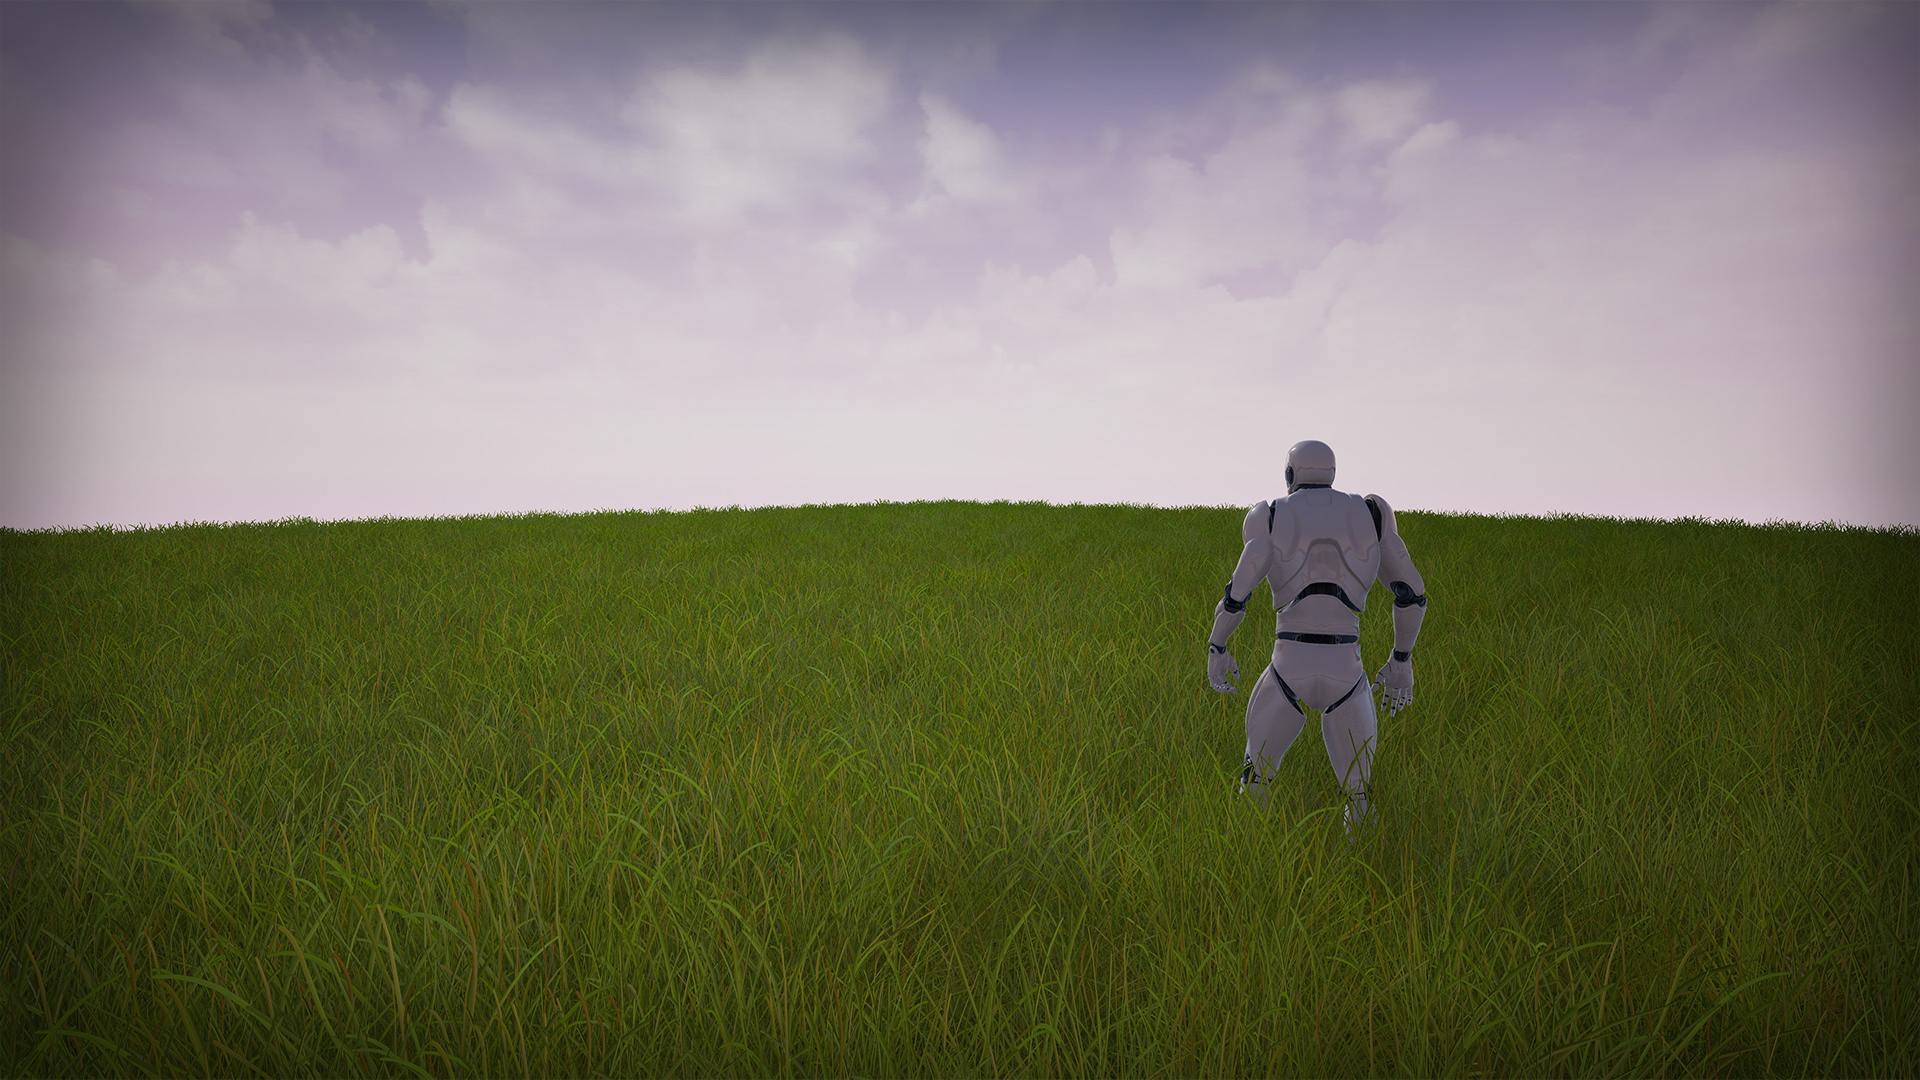 Realistic Grass Vol. 2 by James Yates